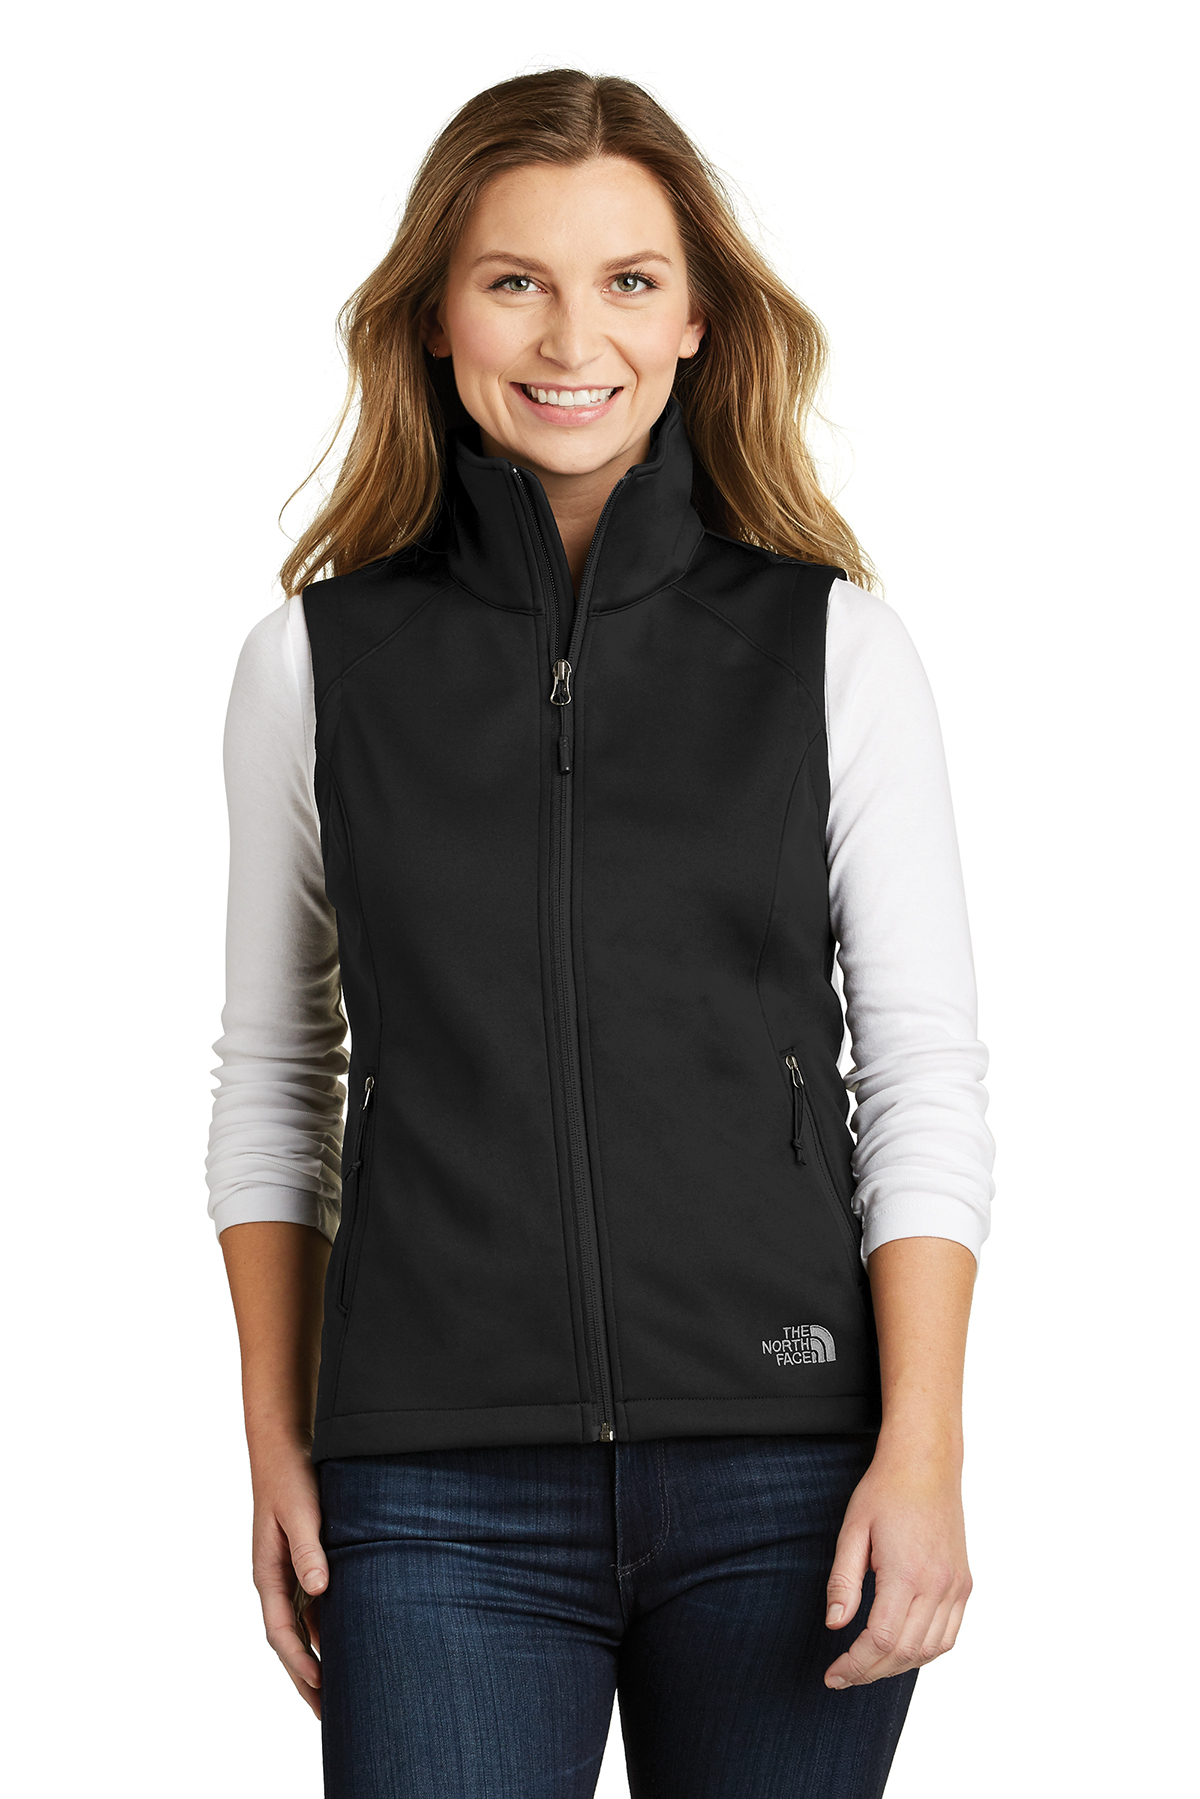 79adffc9c The North Face® NF0A3LH1 - Ladies Ridgeline Soft Shell Vest